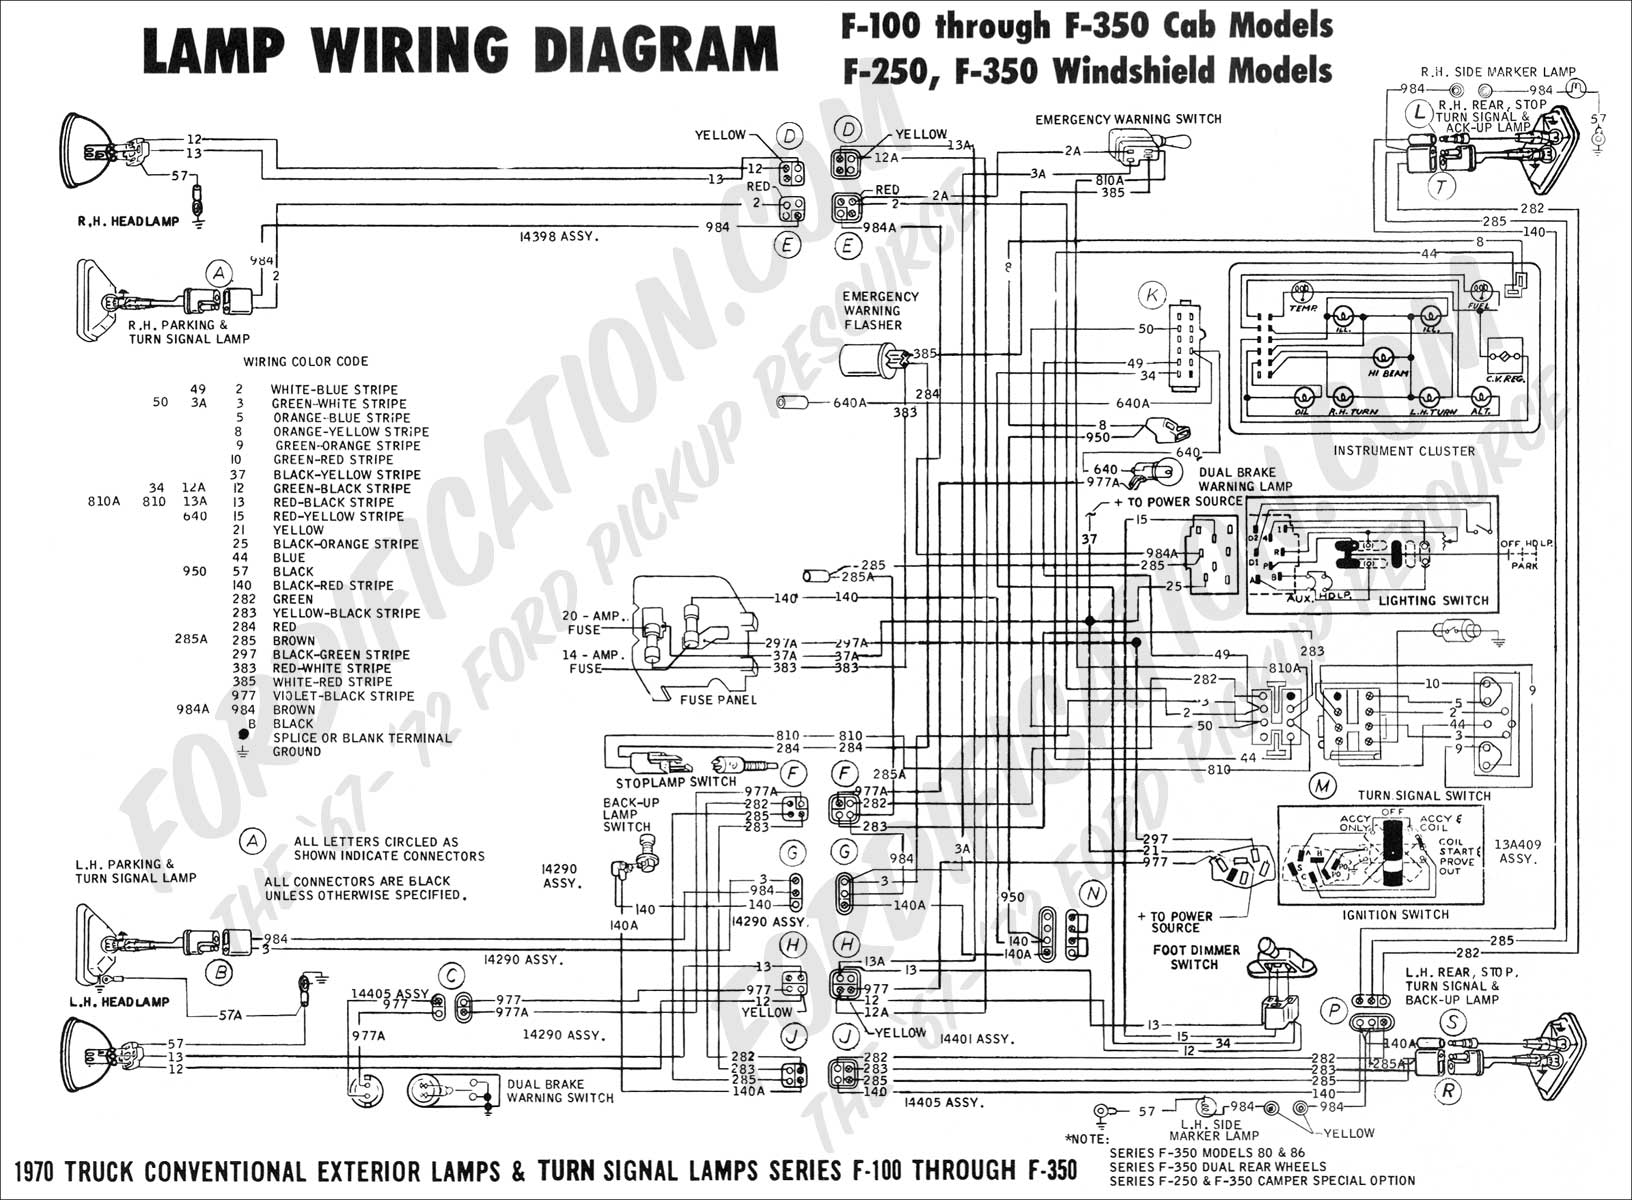 wiring diagram_70ext lights01 ford truck technical drawings and schematics section h wiring ford f750 wiring diagram at mifinder.co